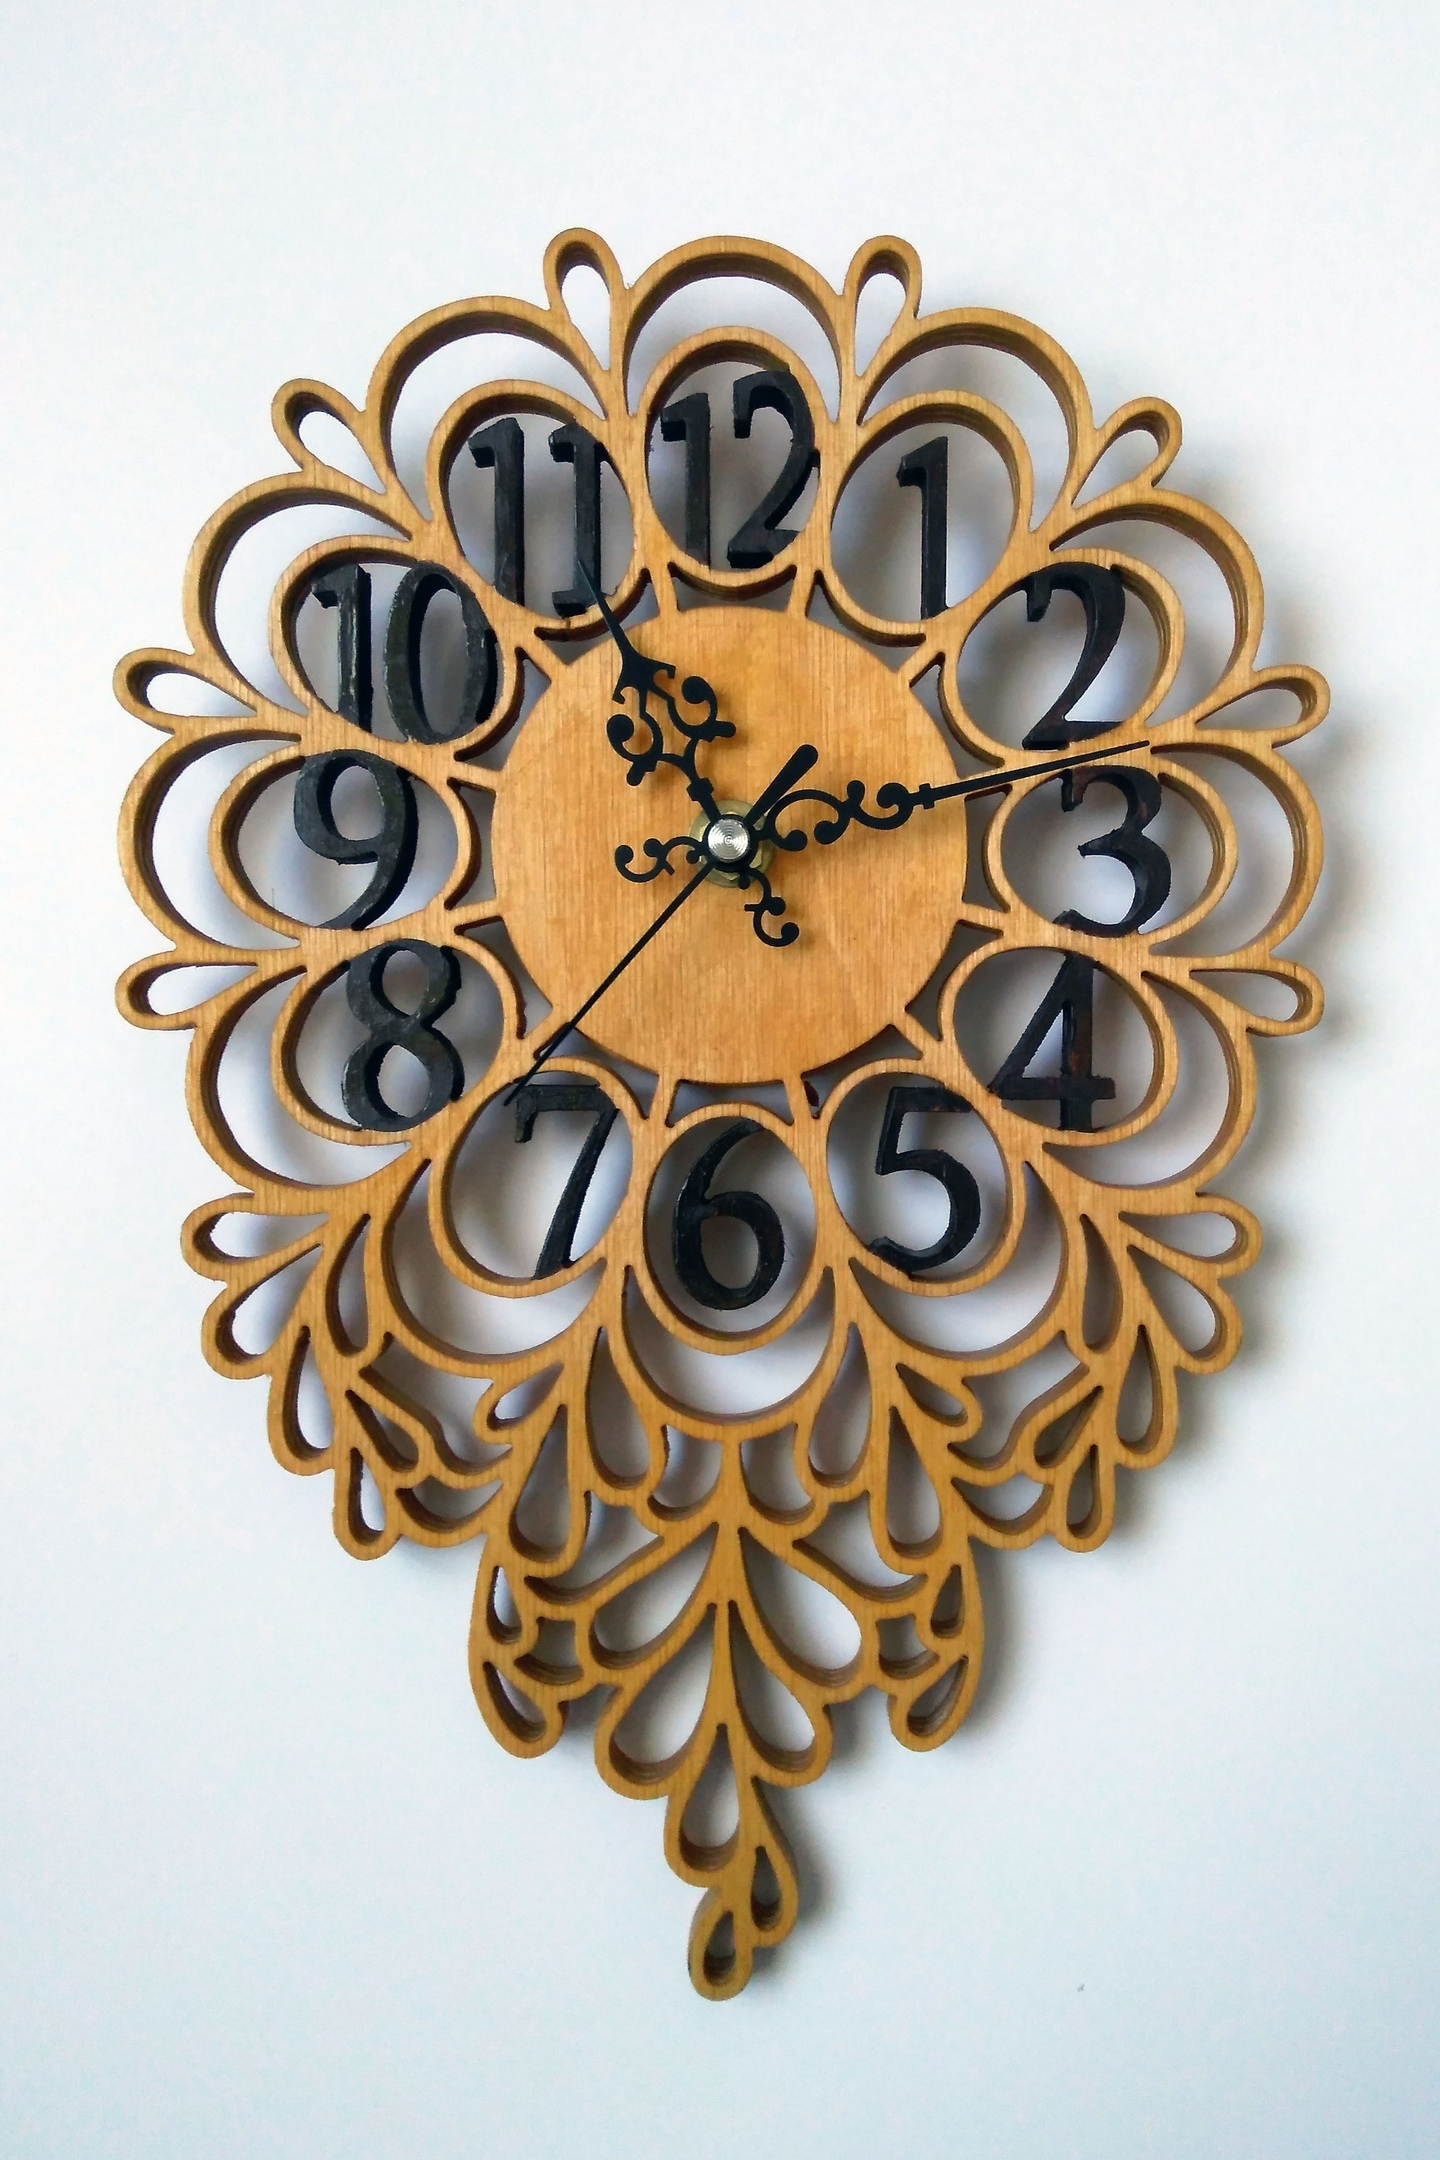 Laser Cut Decorative Wooden Wall Clock Free DXF File